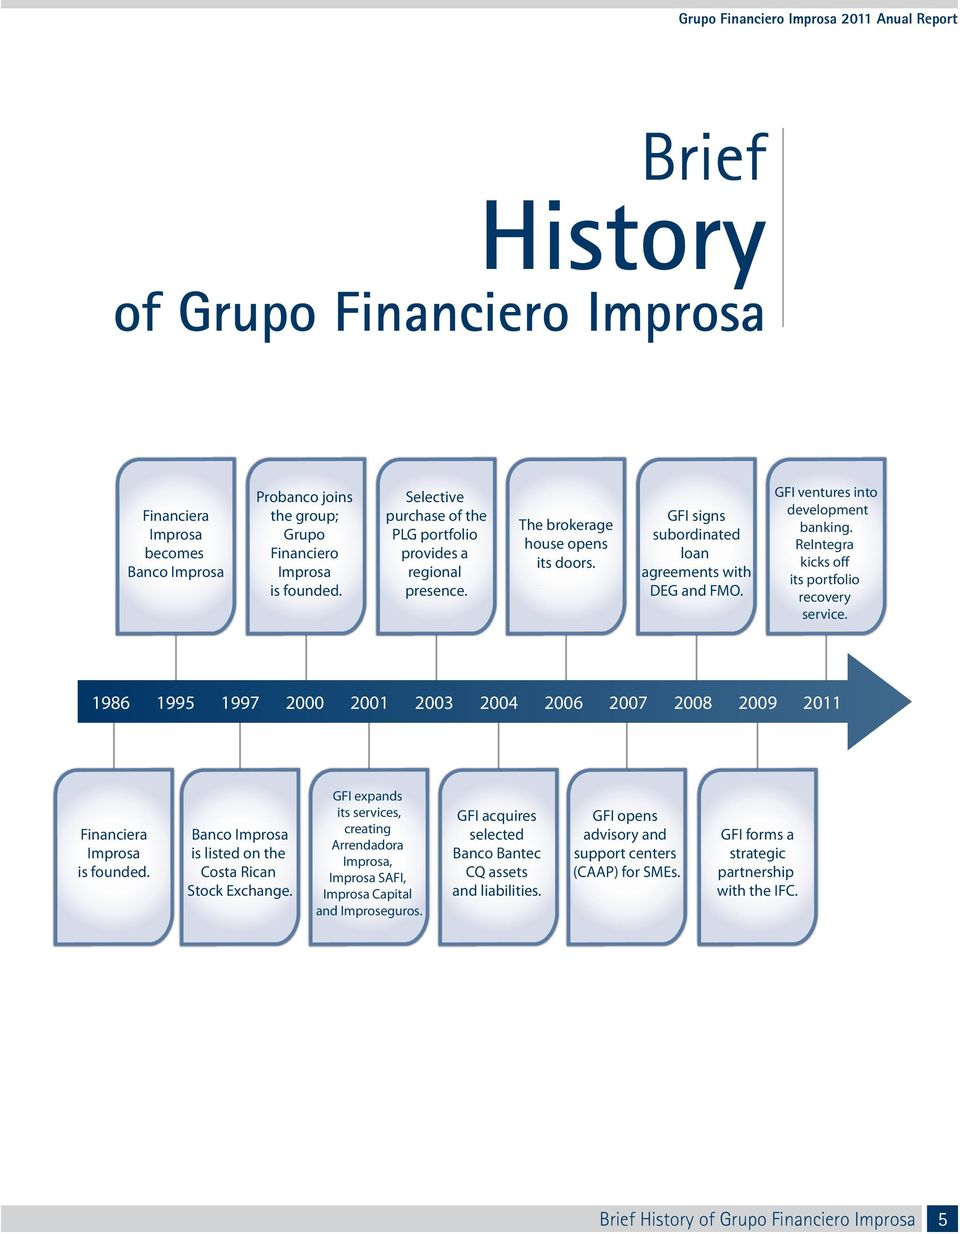 GFI ventures into development banking. ReIntegra kicks off its portfolio recovery service. 1986 1995 1997 2000 2001 2003 2004 2006 2007 2008 2009 2011 Financiera Improsa is founded.